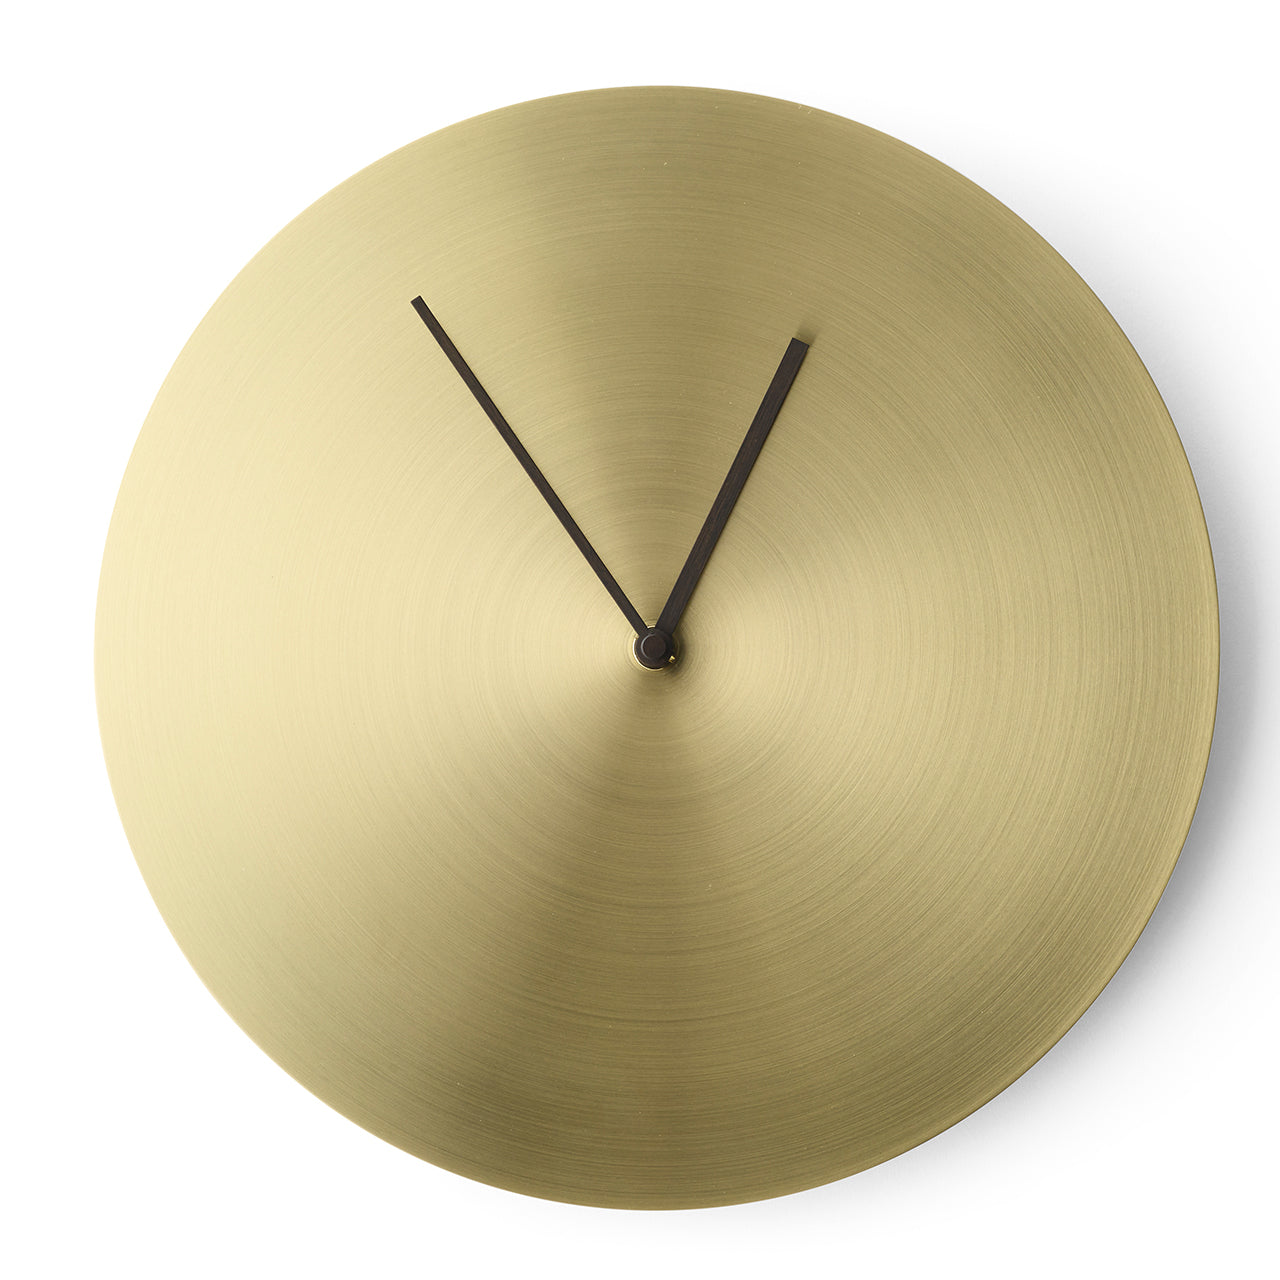 Norm Wall Clock: Brass or Steel